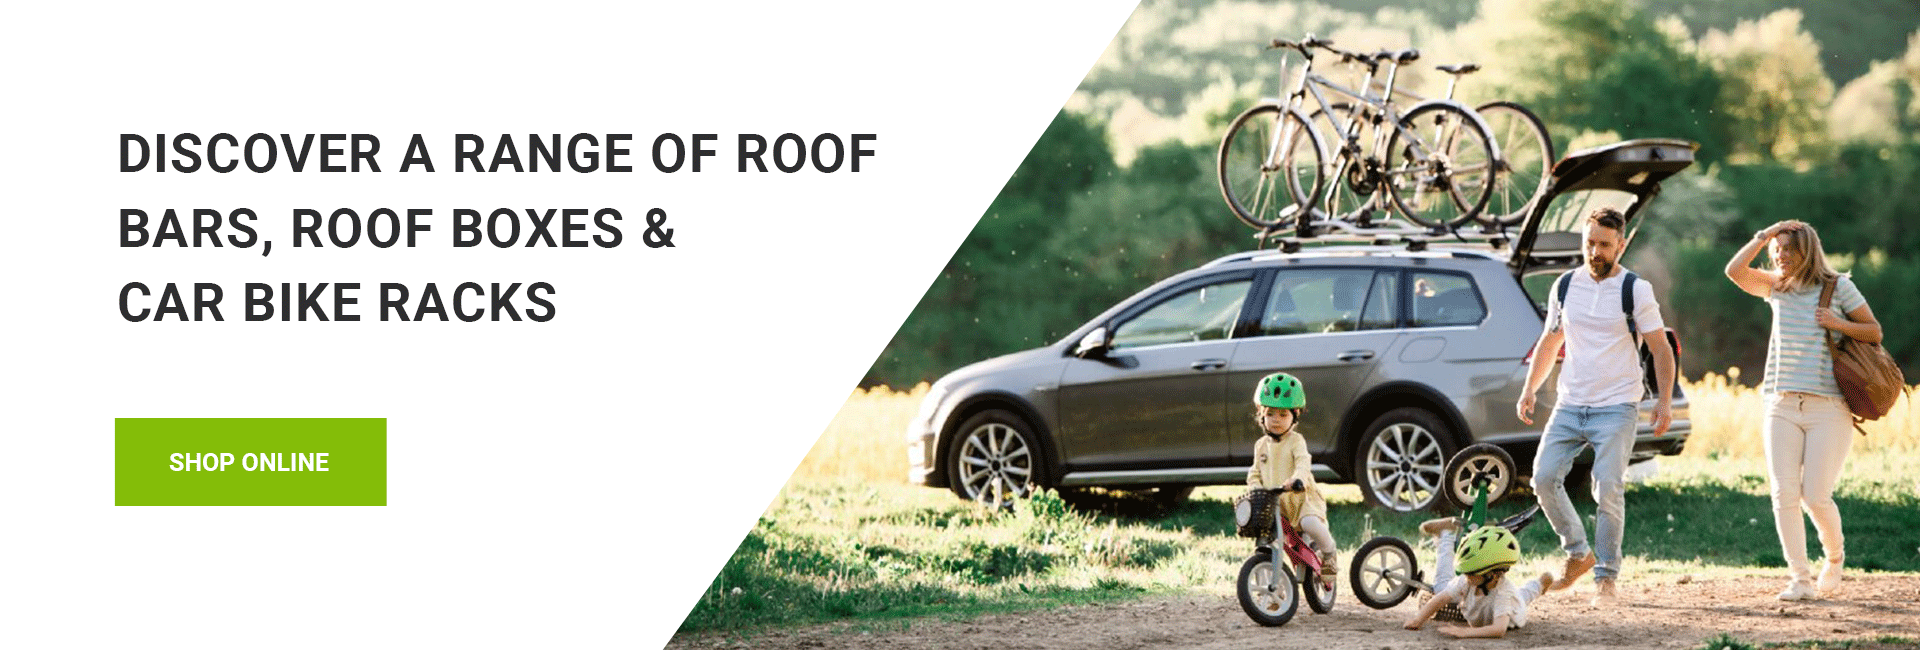 Car Roof Bars, Roof Boxes and Bike Racks